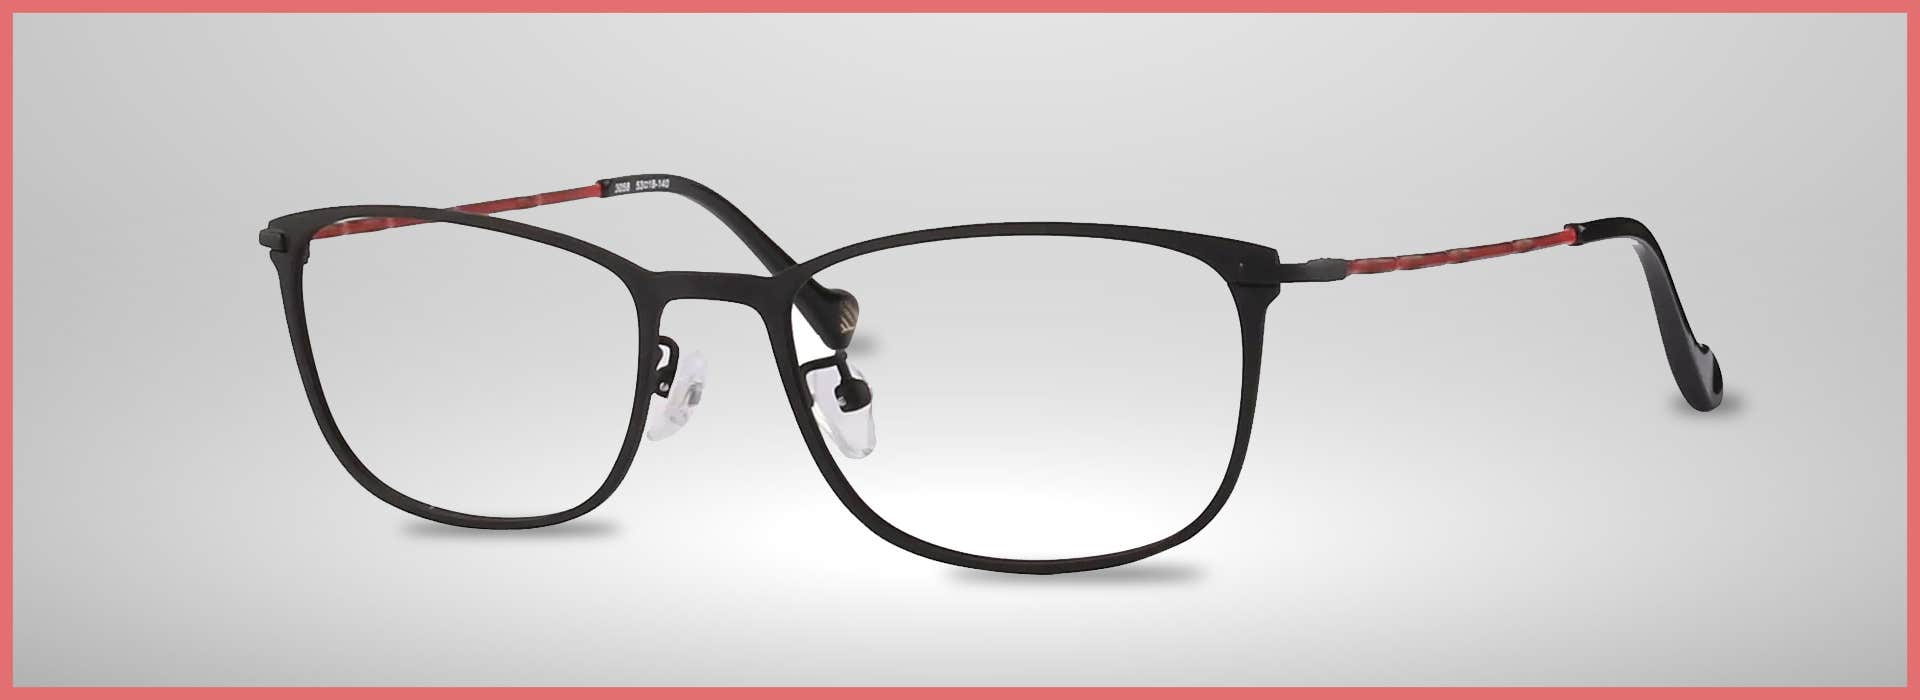 Most durable eyeglass frame material